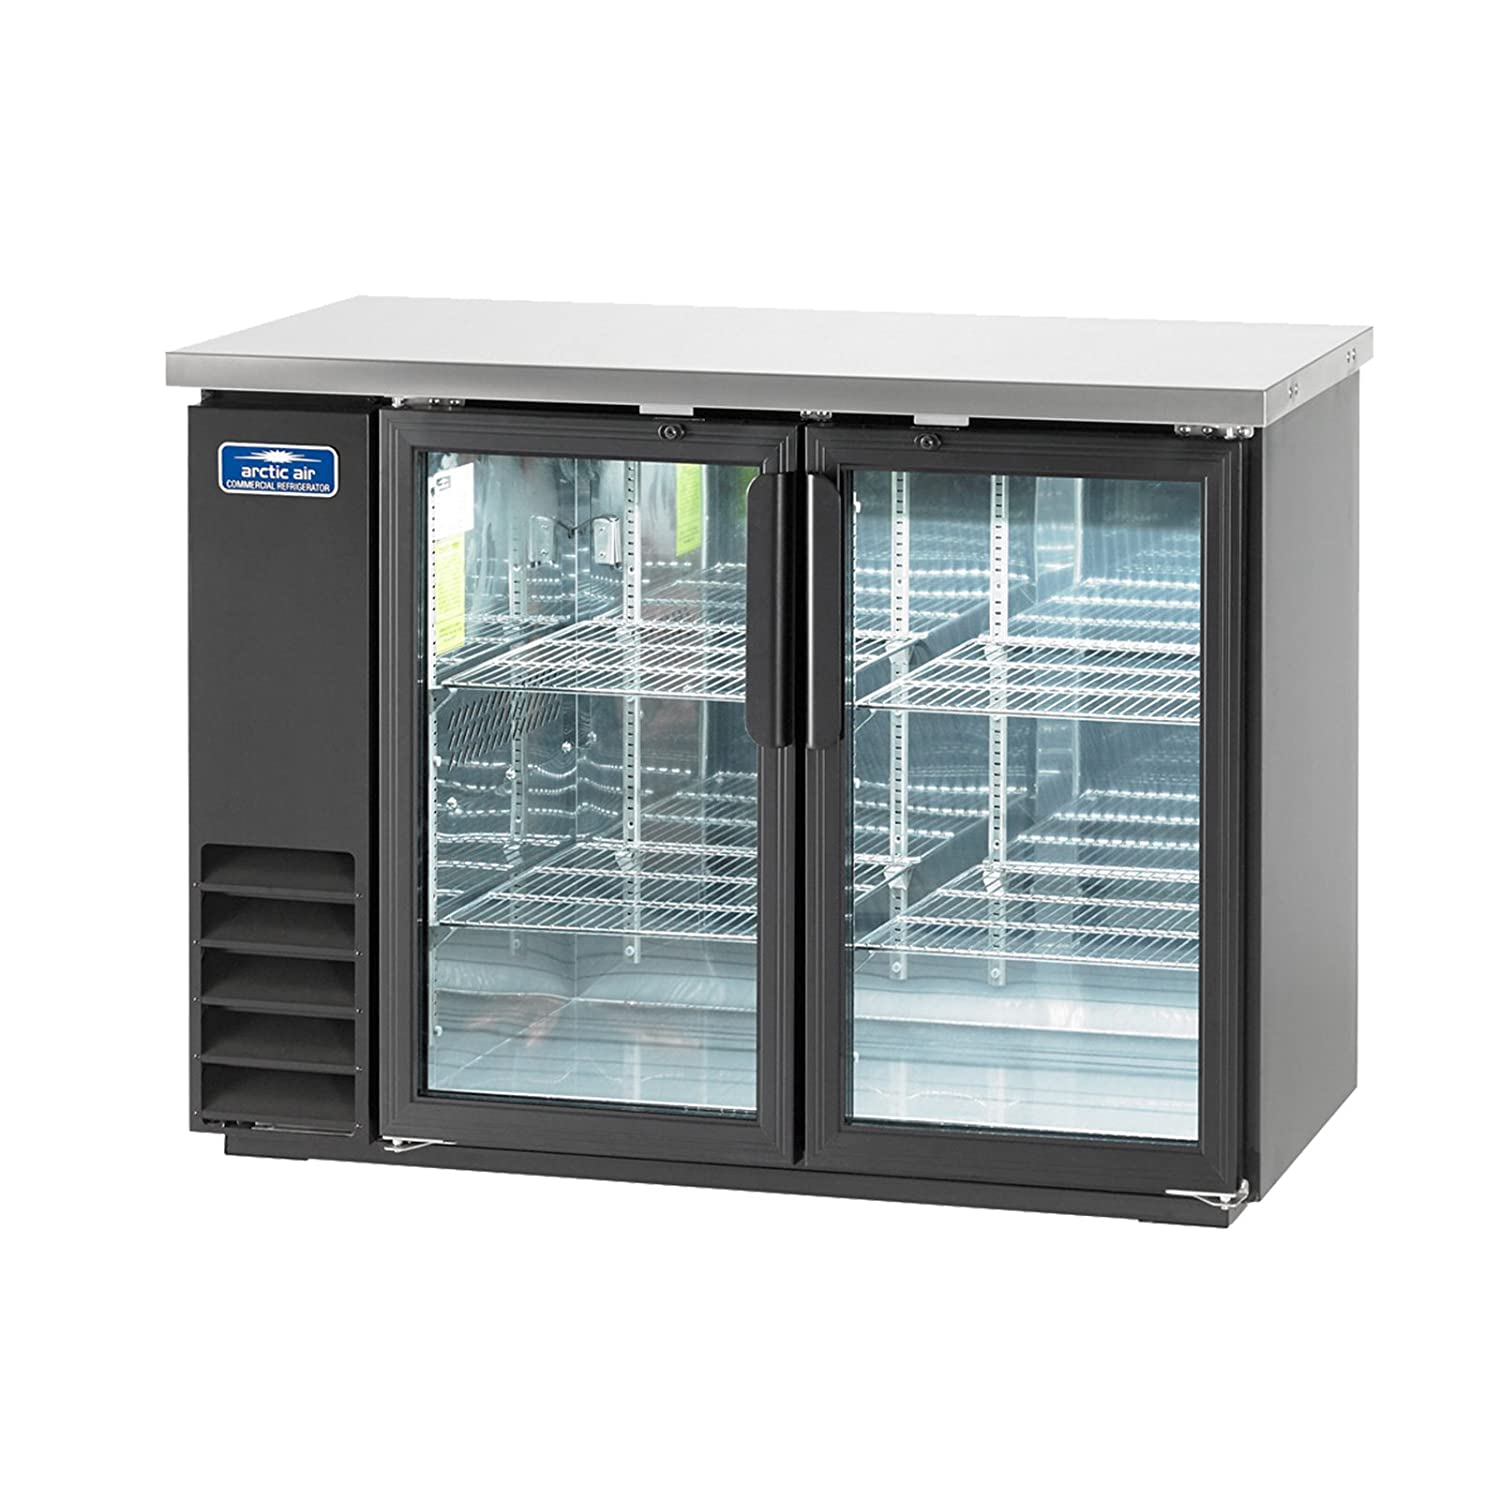 Arctic Air ABB48G Glass 49-Inch 2-Door Back Bar Refrigerator, 115v